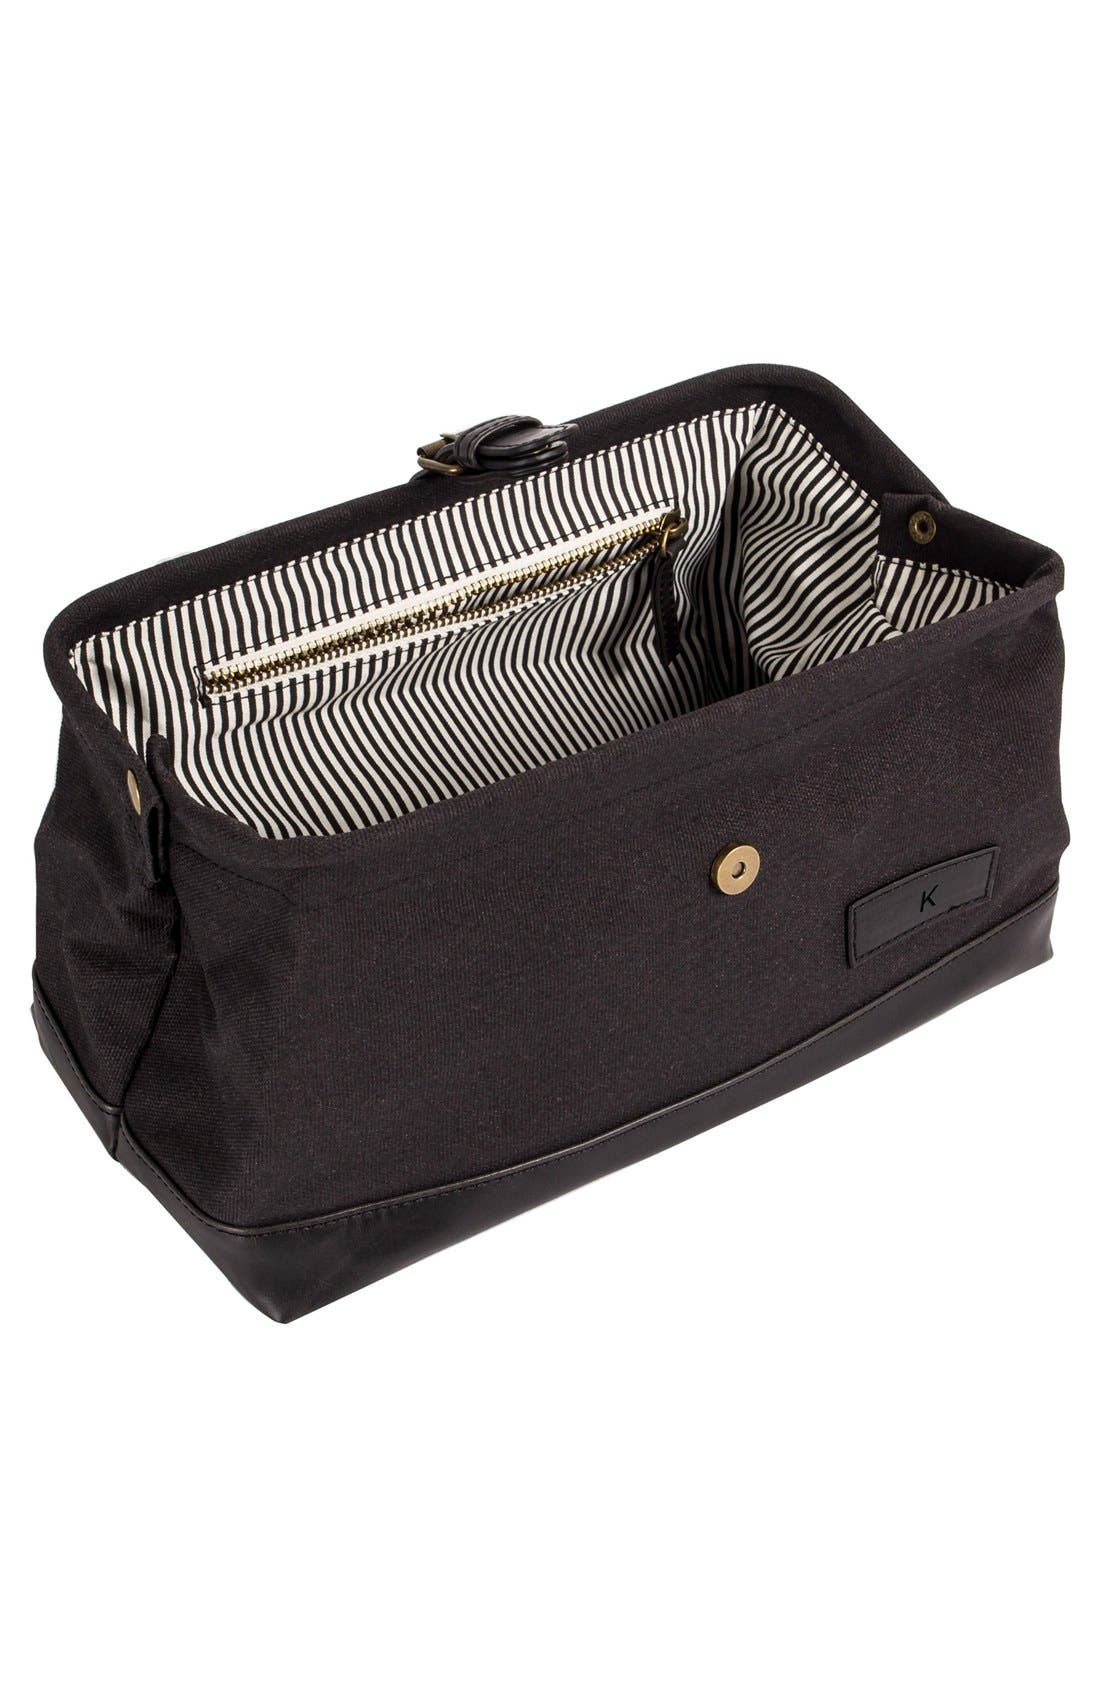 Monogram Travel Case,                             Alternate thumbnail 3, color,                             001